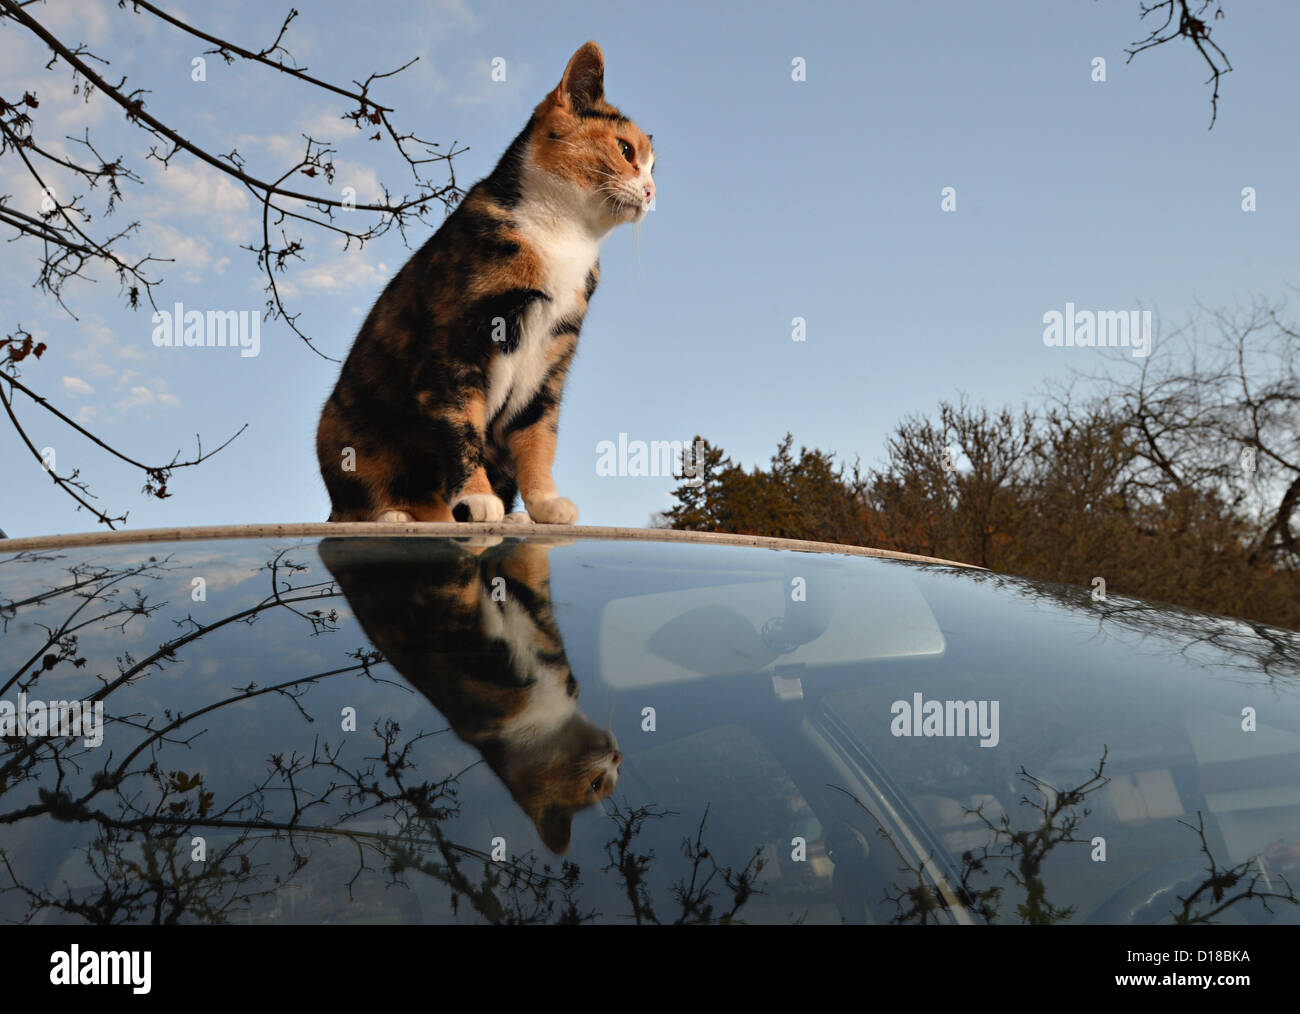 Nov. 16, 2012 - Roseburg, Oregon, U.S - A domestic cat sits on the roof of a parked car in the driveway of a home - Stock Image